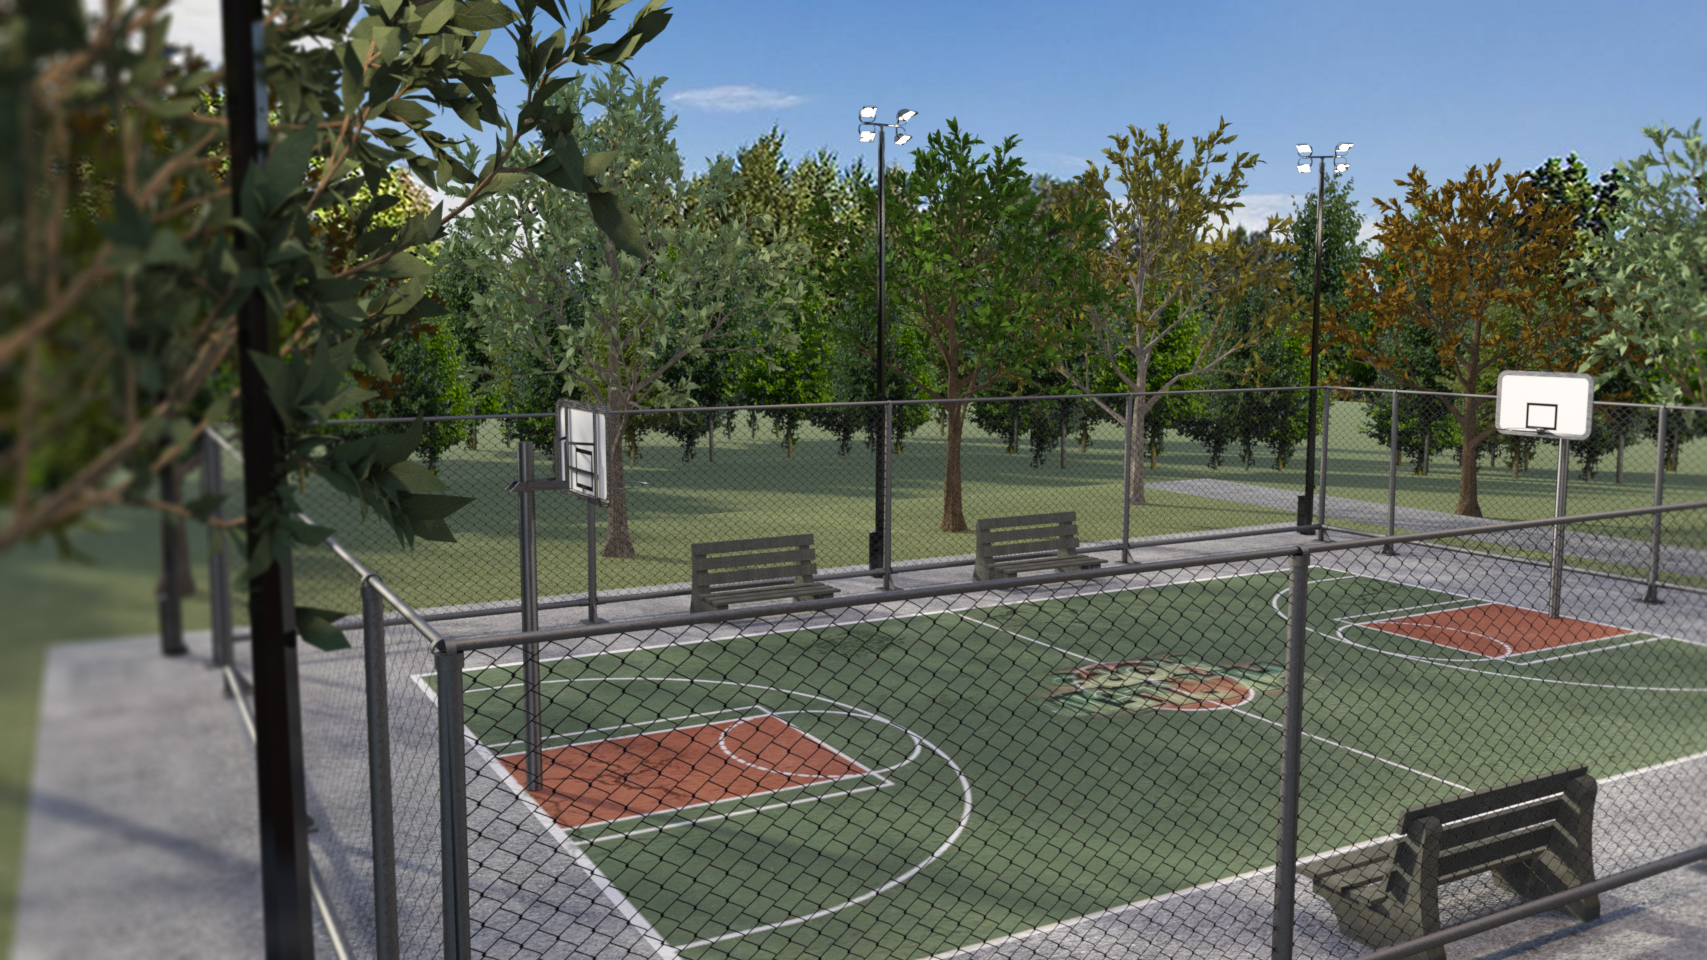 Basketball Court by: kubramatic, 3D Models by Daz 3D